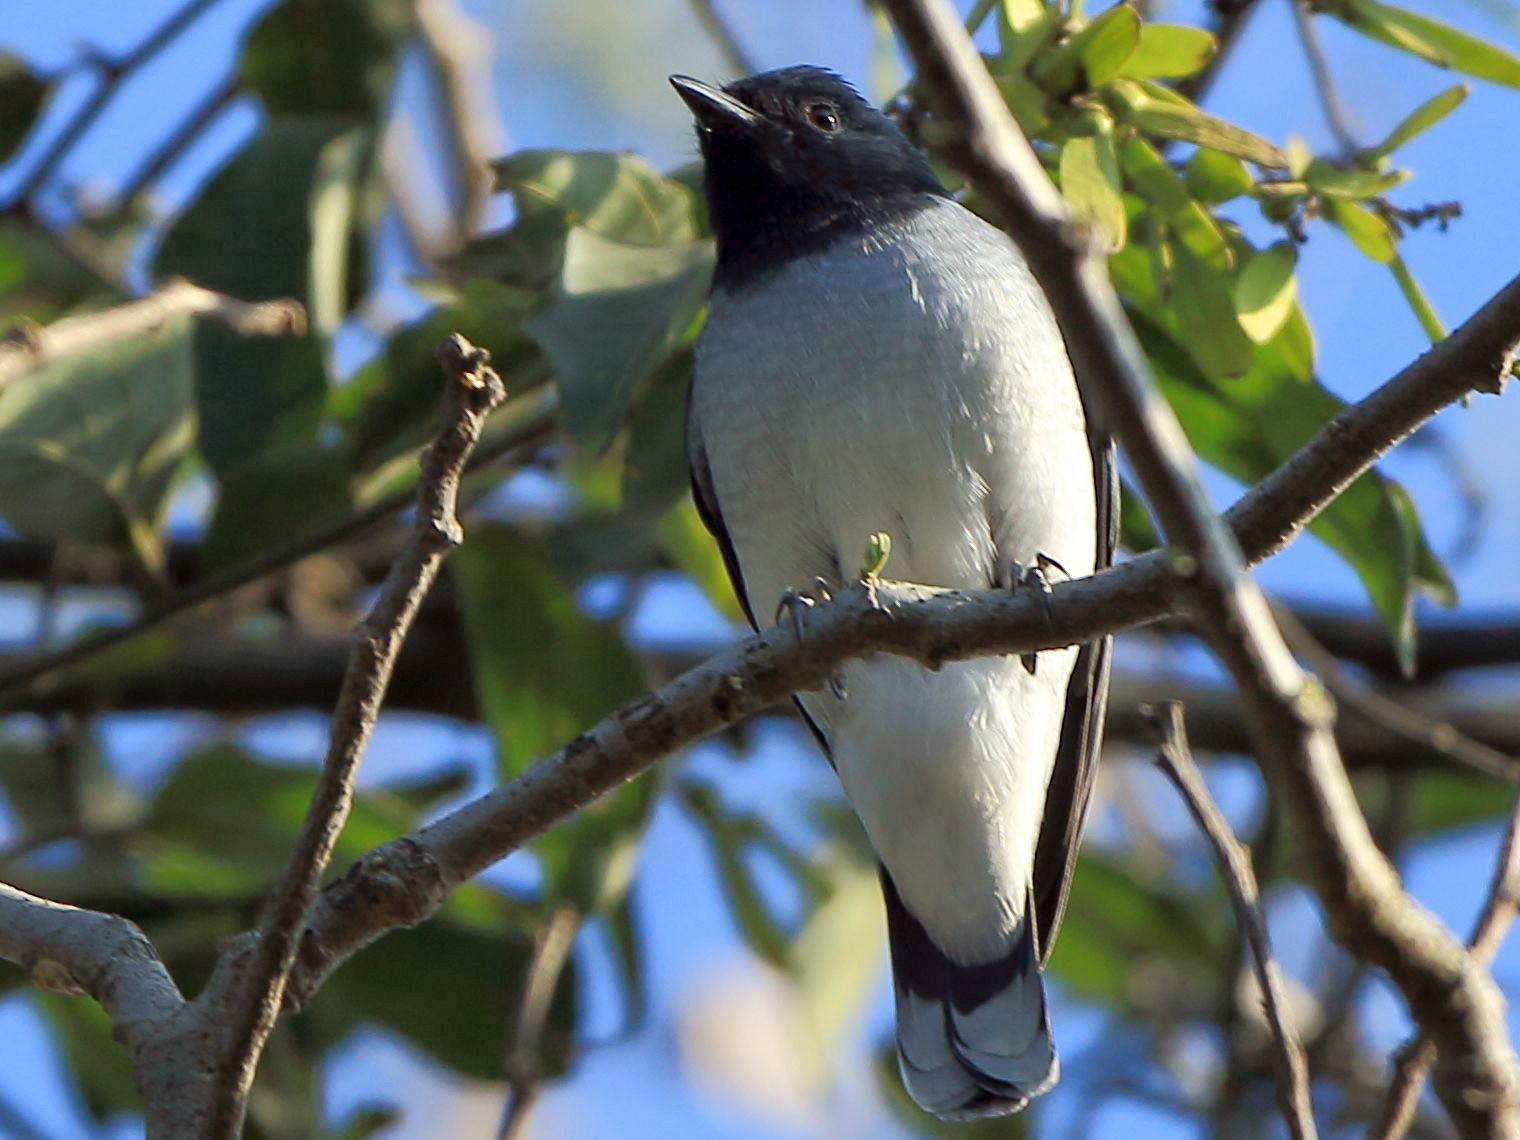 Black-headed Cuckooshrike - Arnab Pal